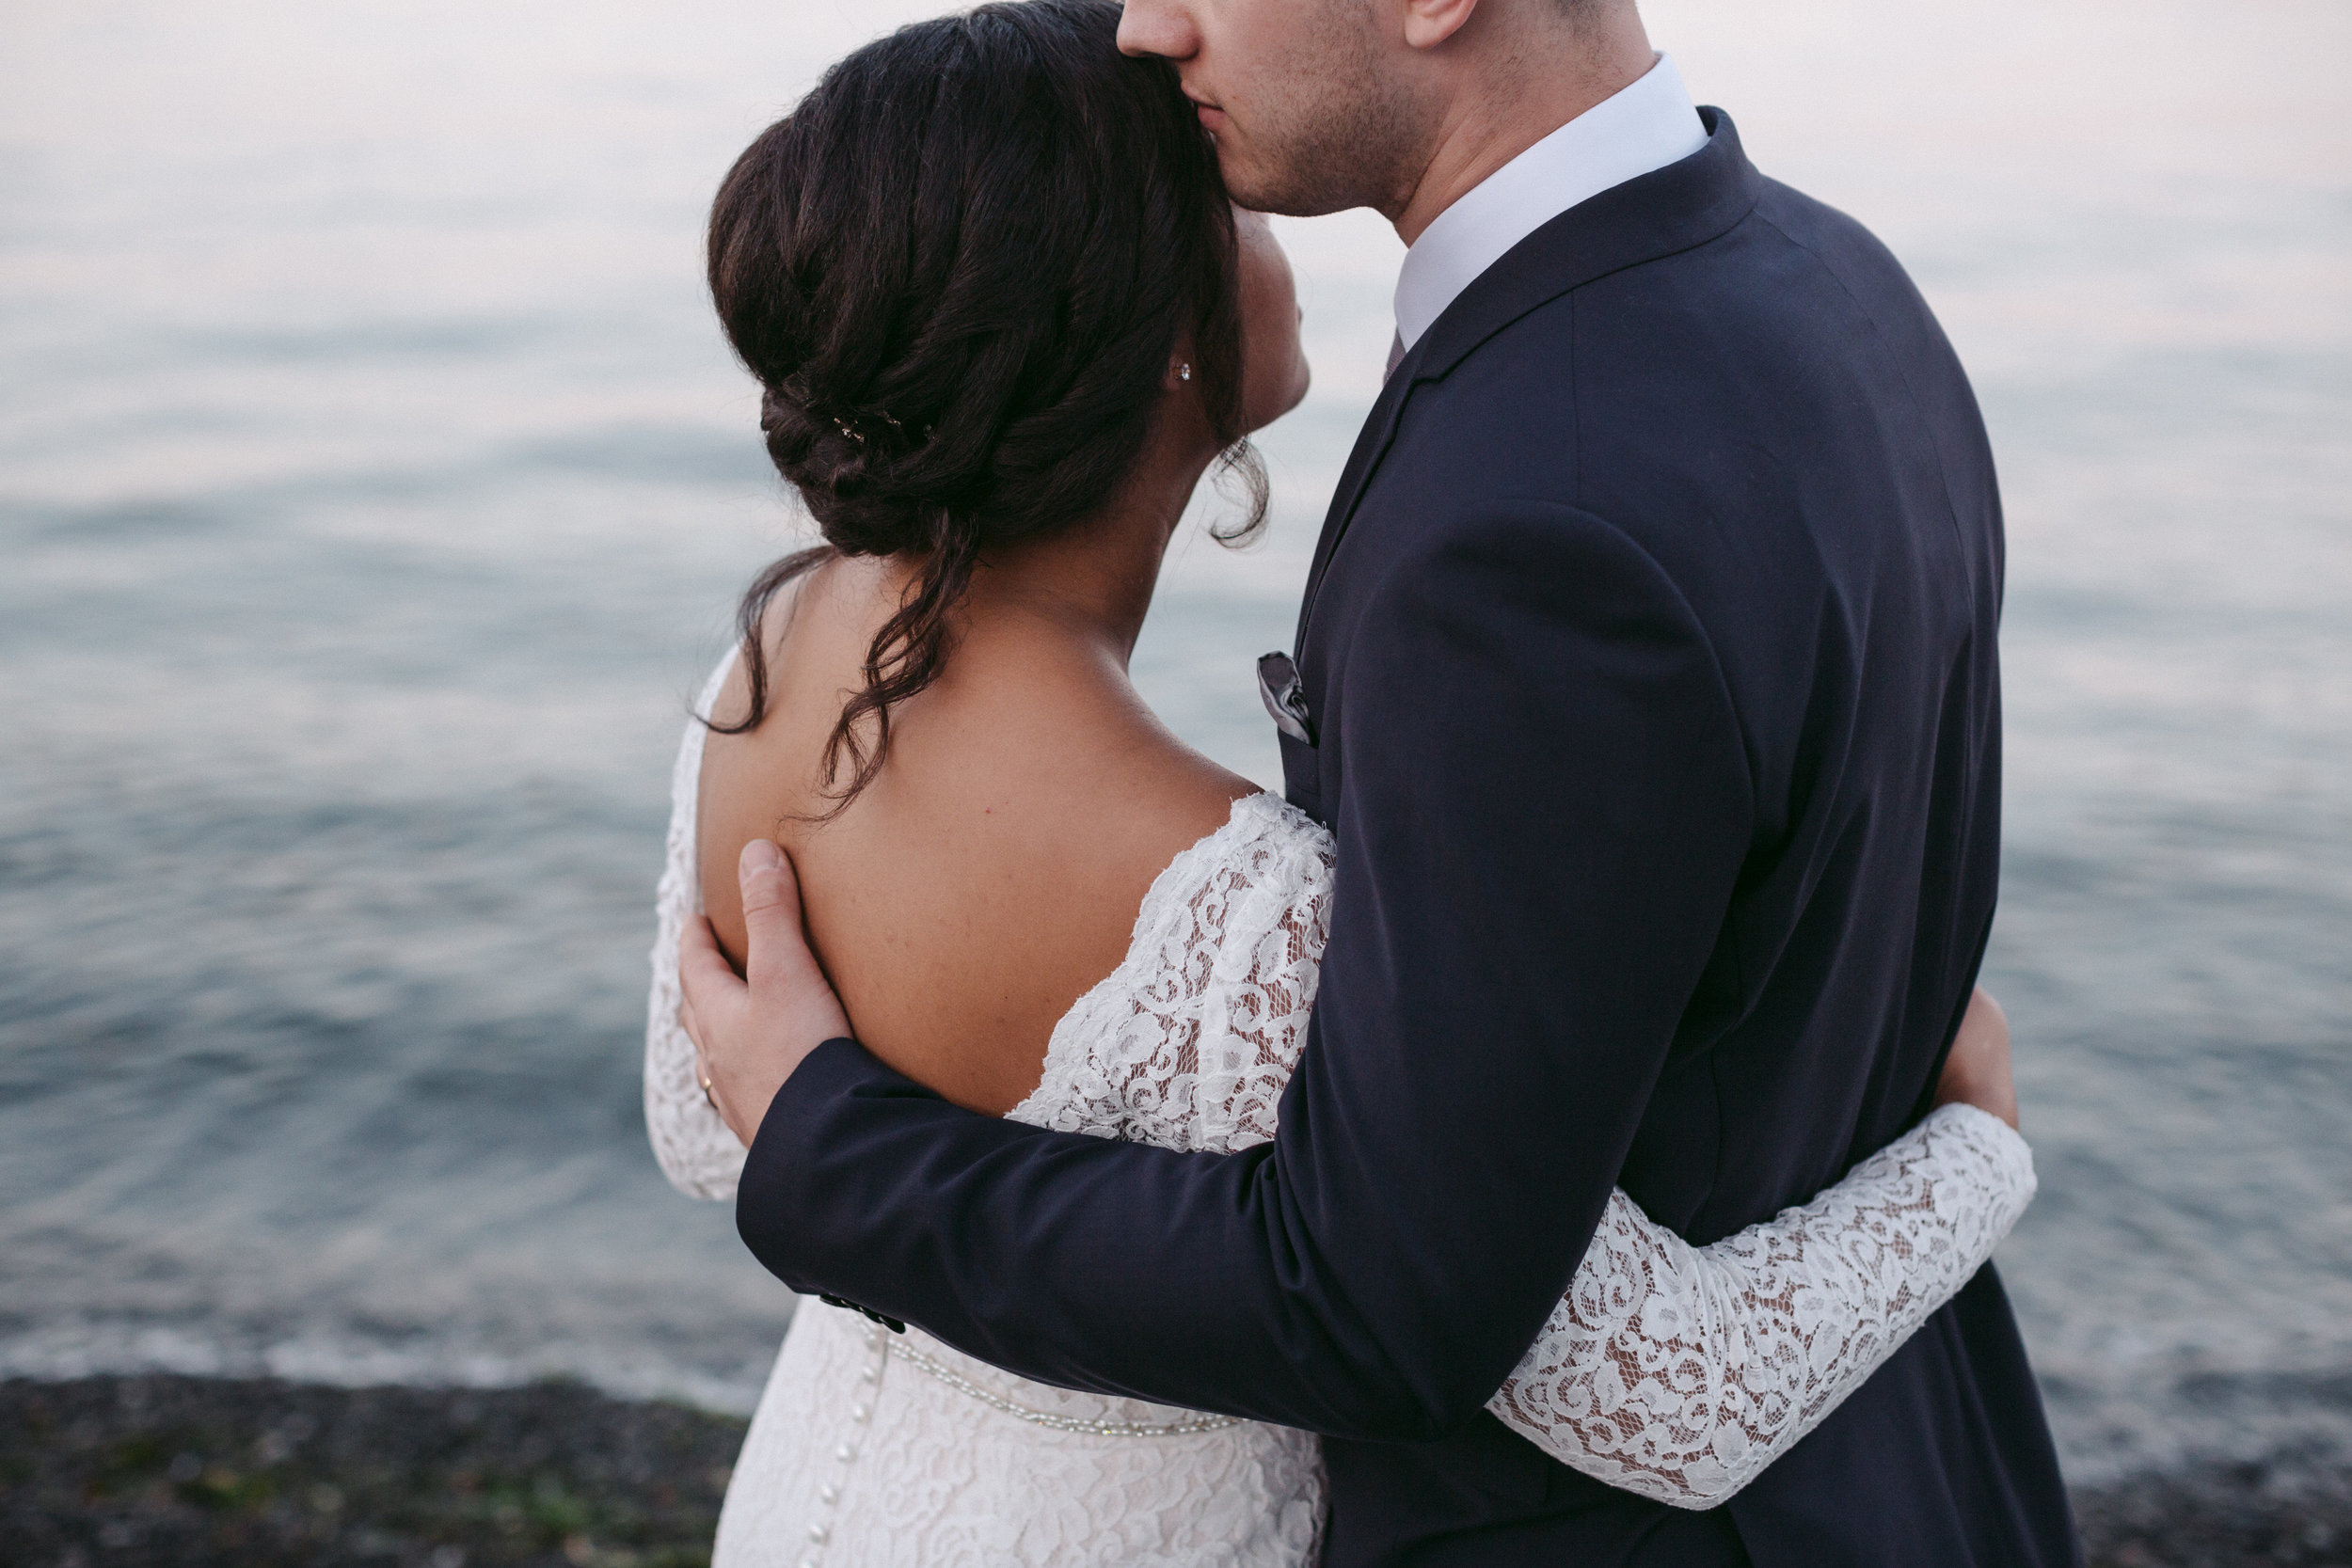 View More: http://ameris.pass.us/desire-austin-married